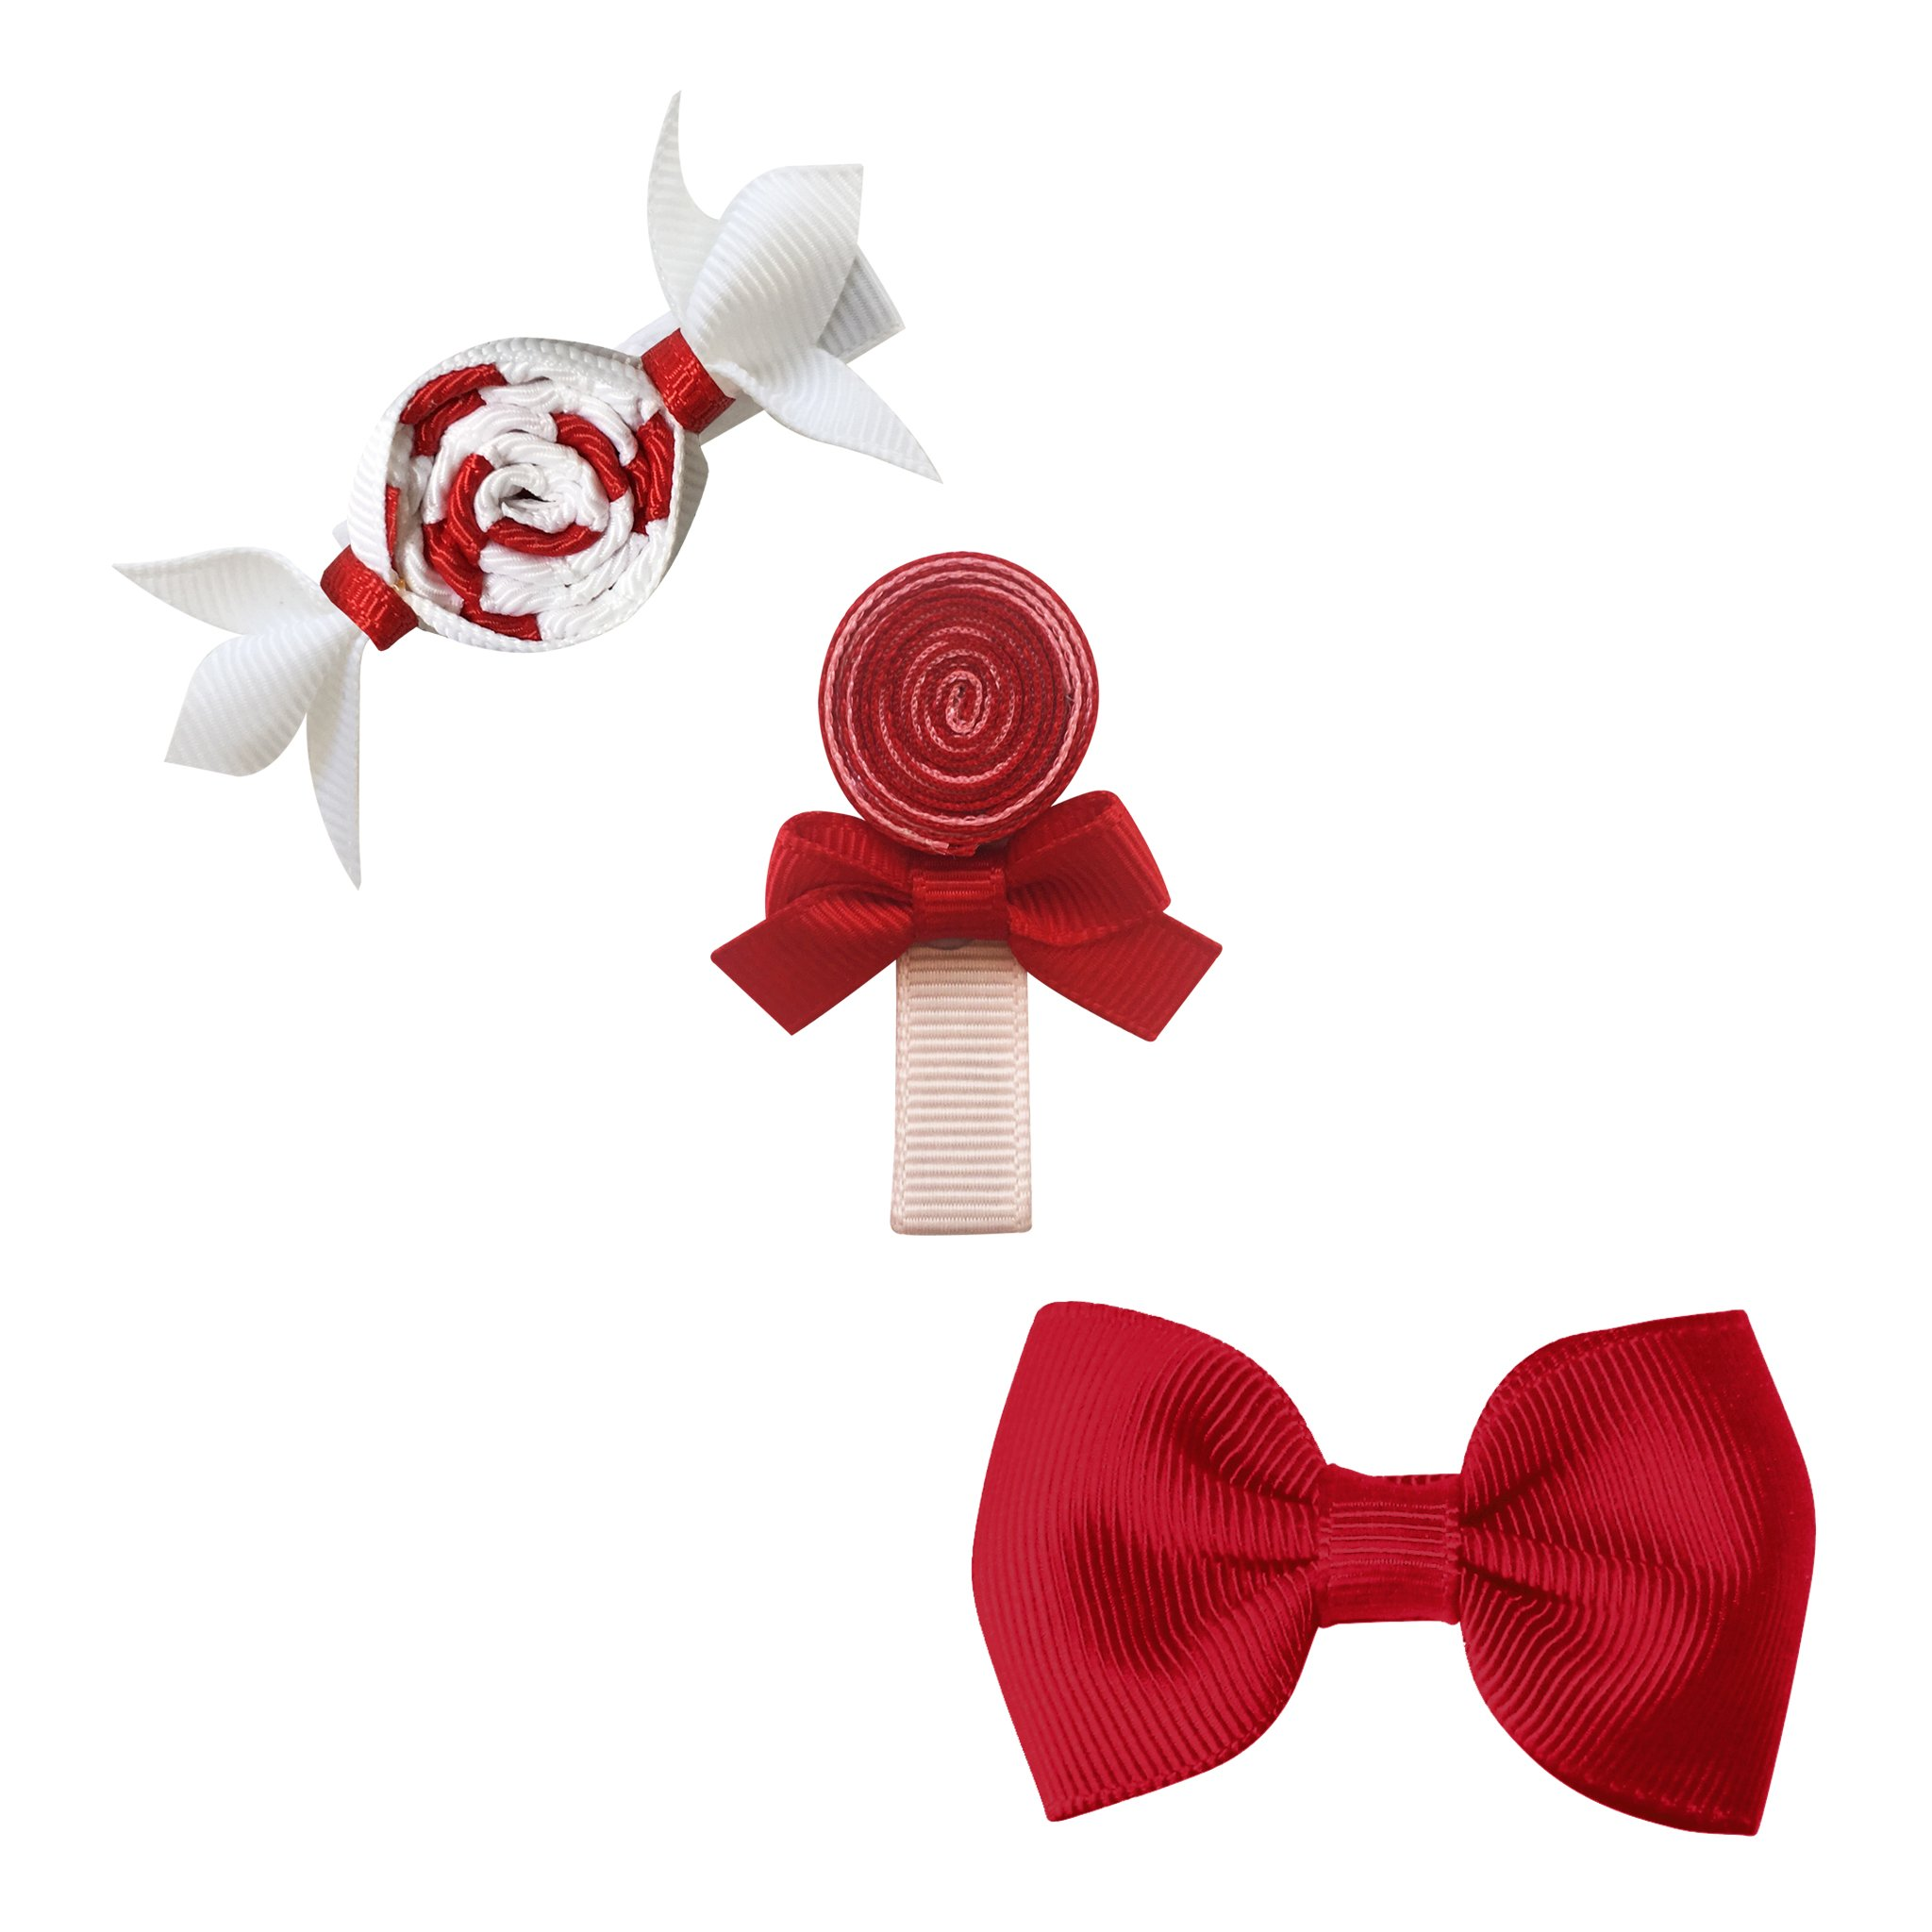 Image of Milledeux® Candy Collection gift set - Bonbon, Lollipop and Bow - scarlet